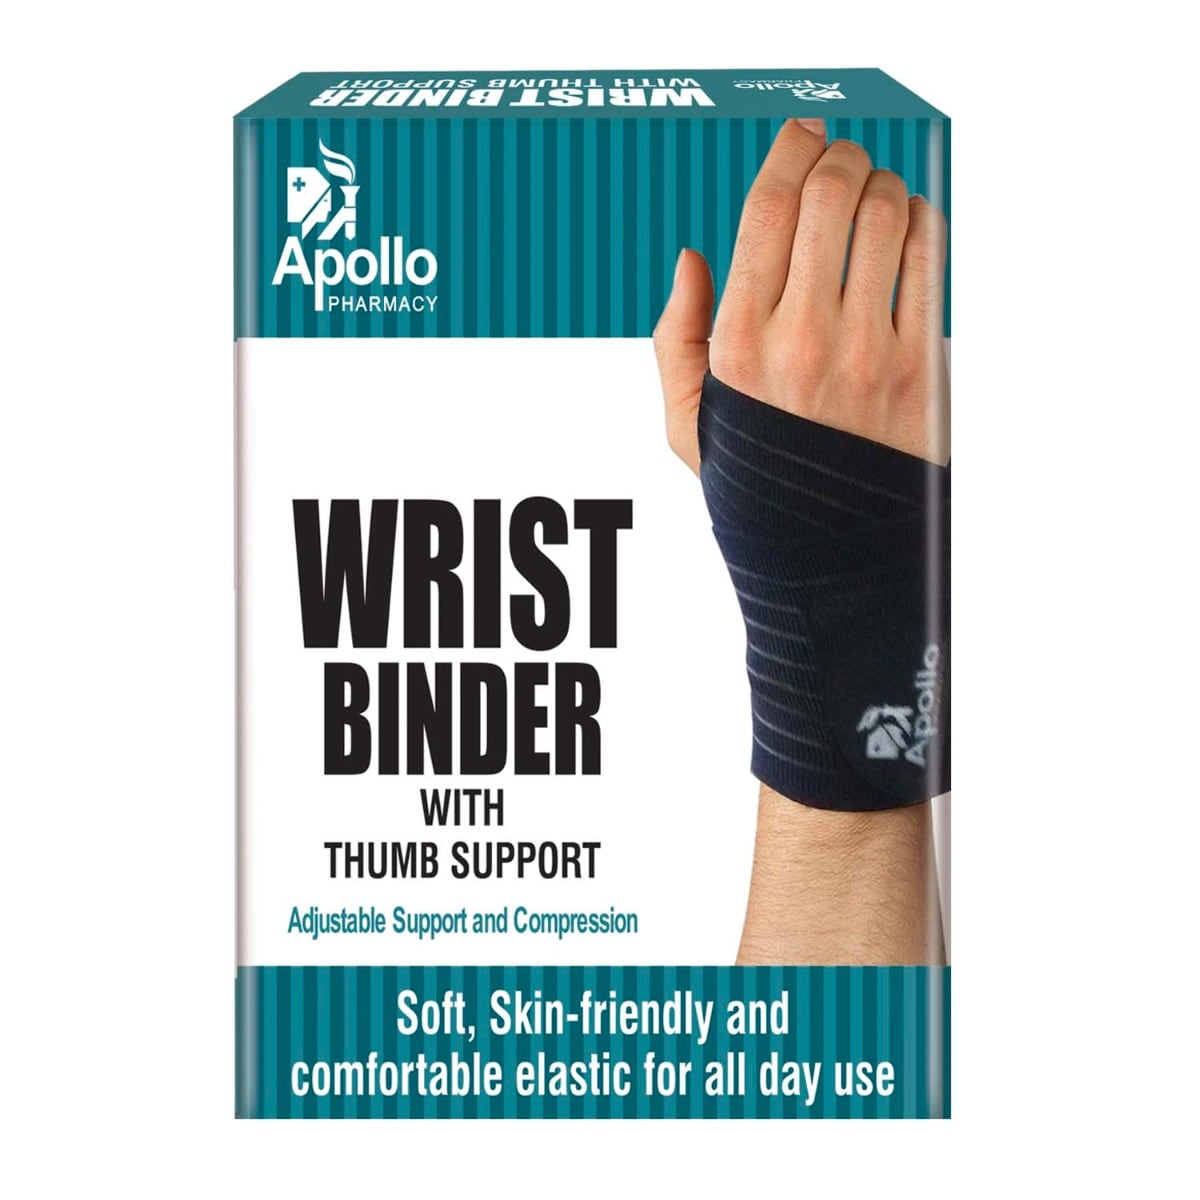 Apollo Pharmacy Wrist Binder With Thumb Support, 1 Count, Pack of 1